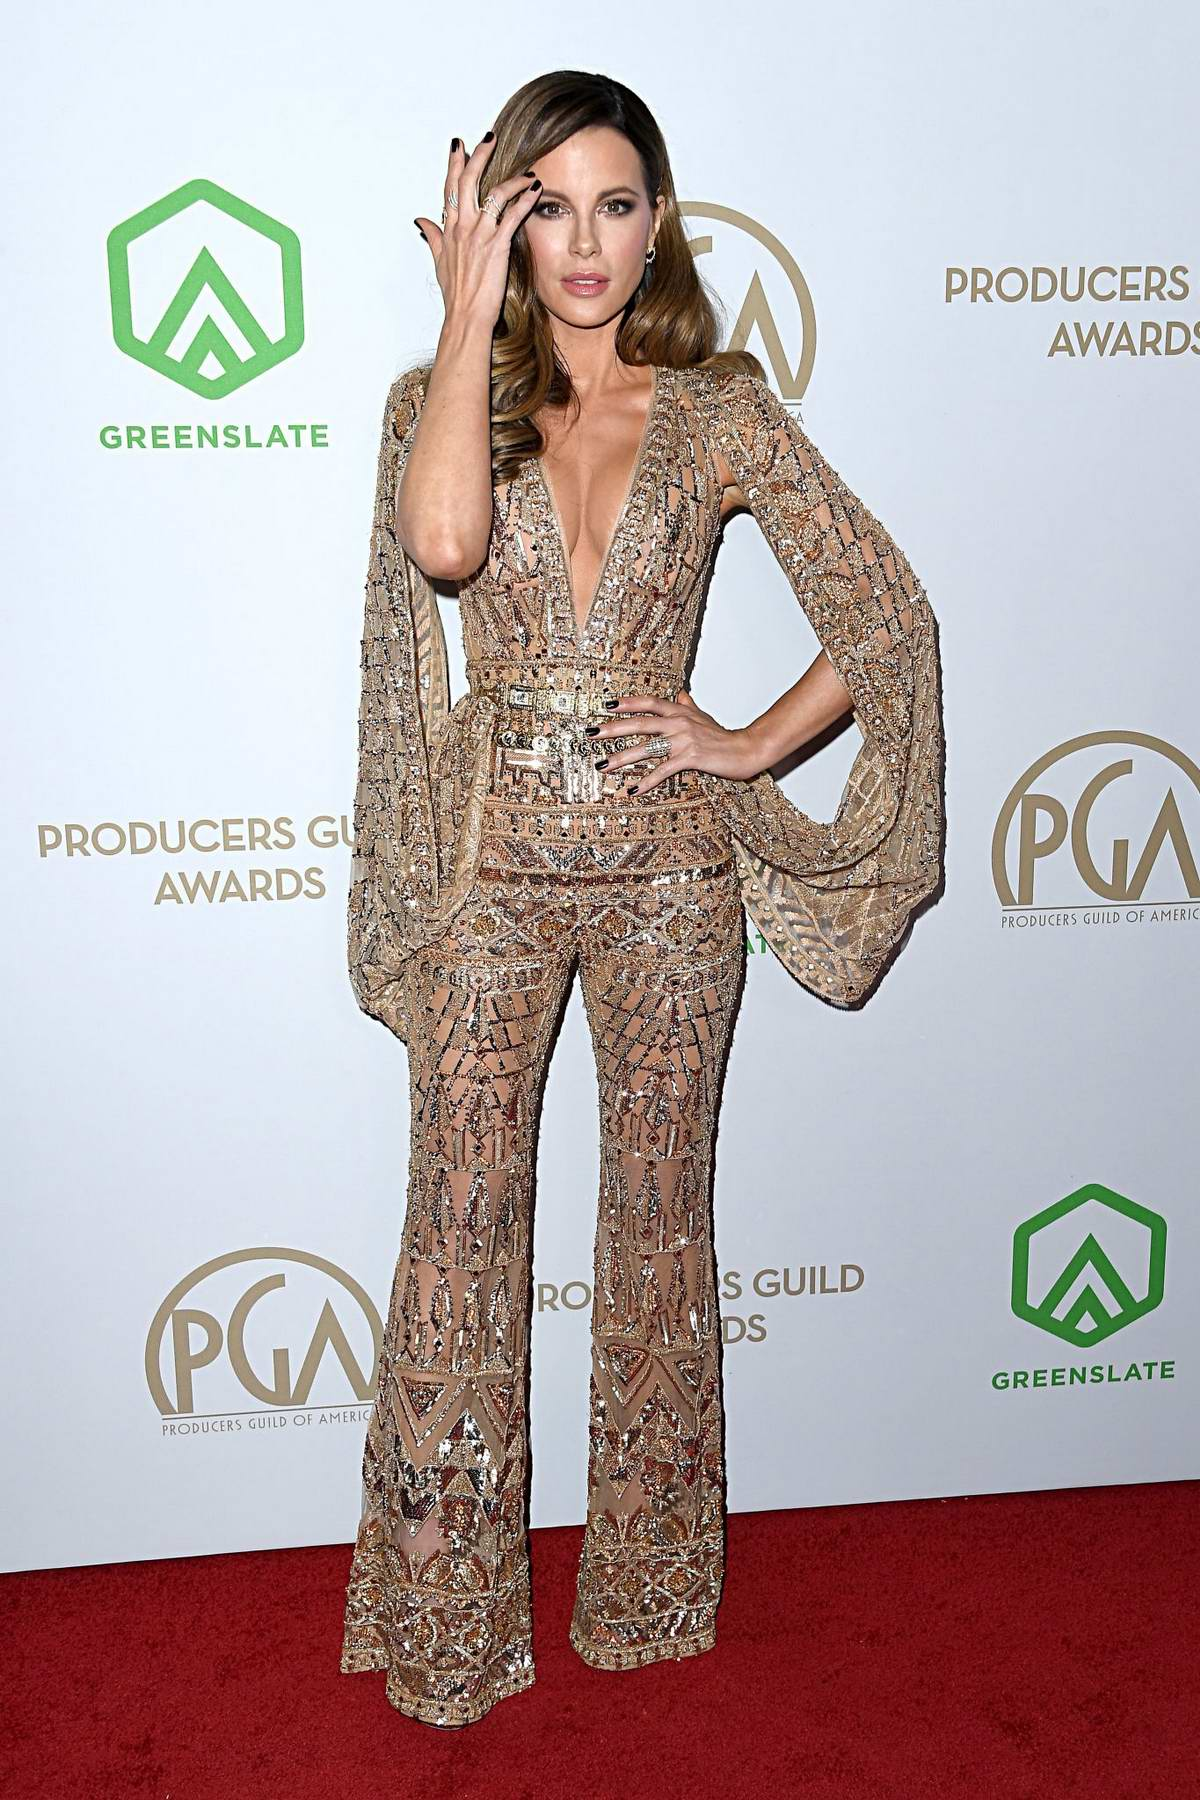 Kate Beckinsale attends the 31st Annual Producers Guild Awards in Los Angeles